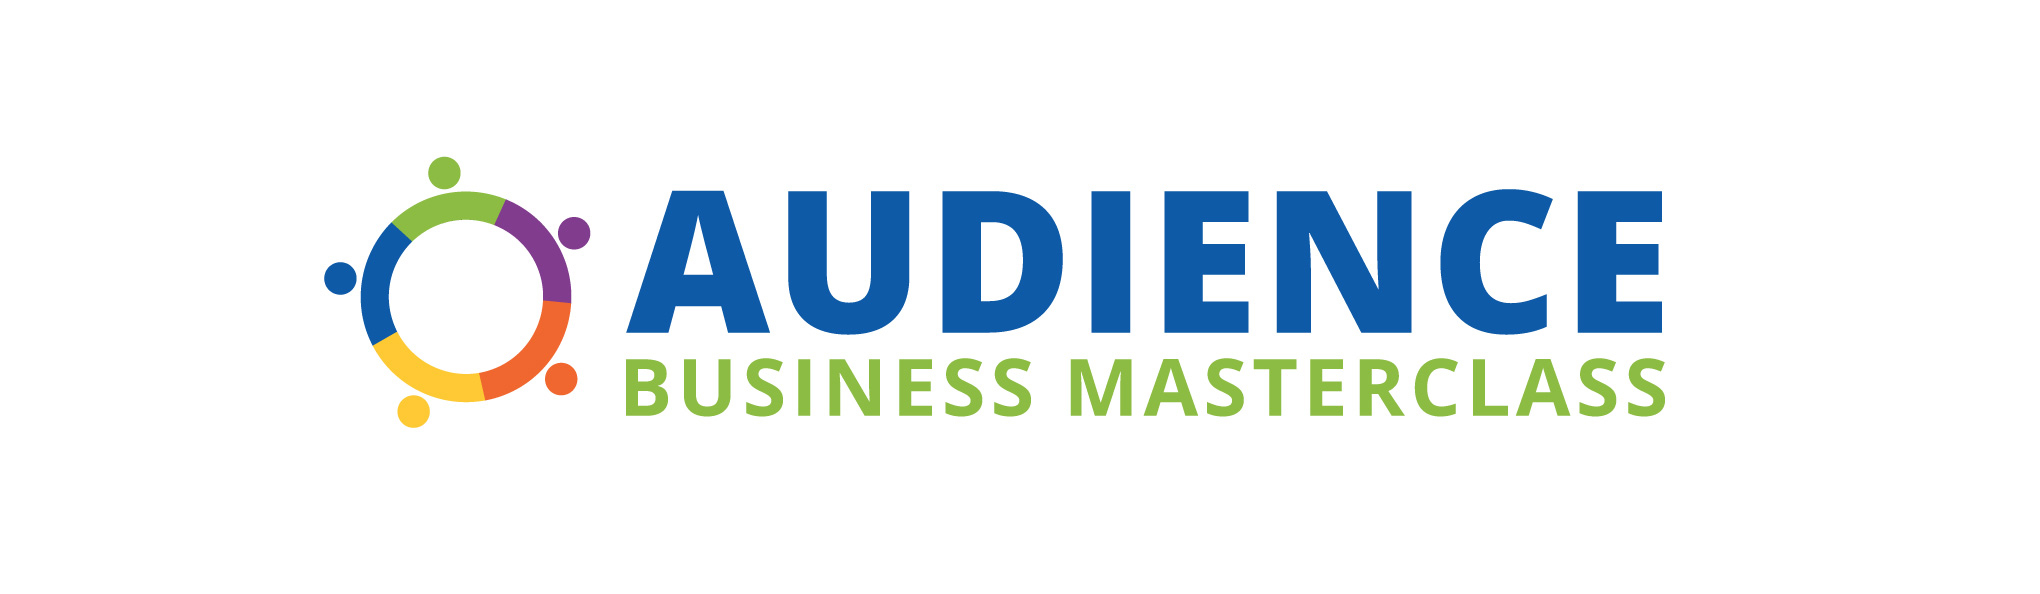 Audience-Bussiness-Masterclass-12 trimmed